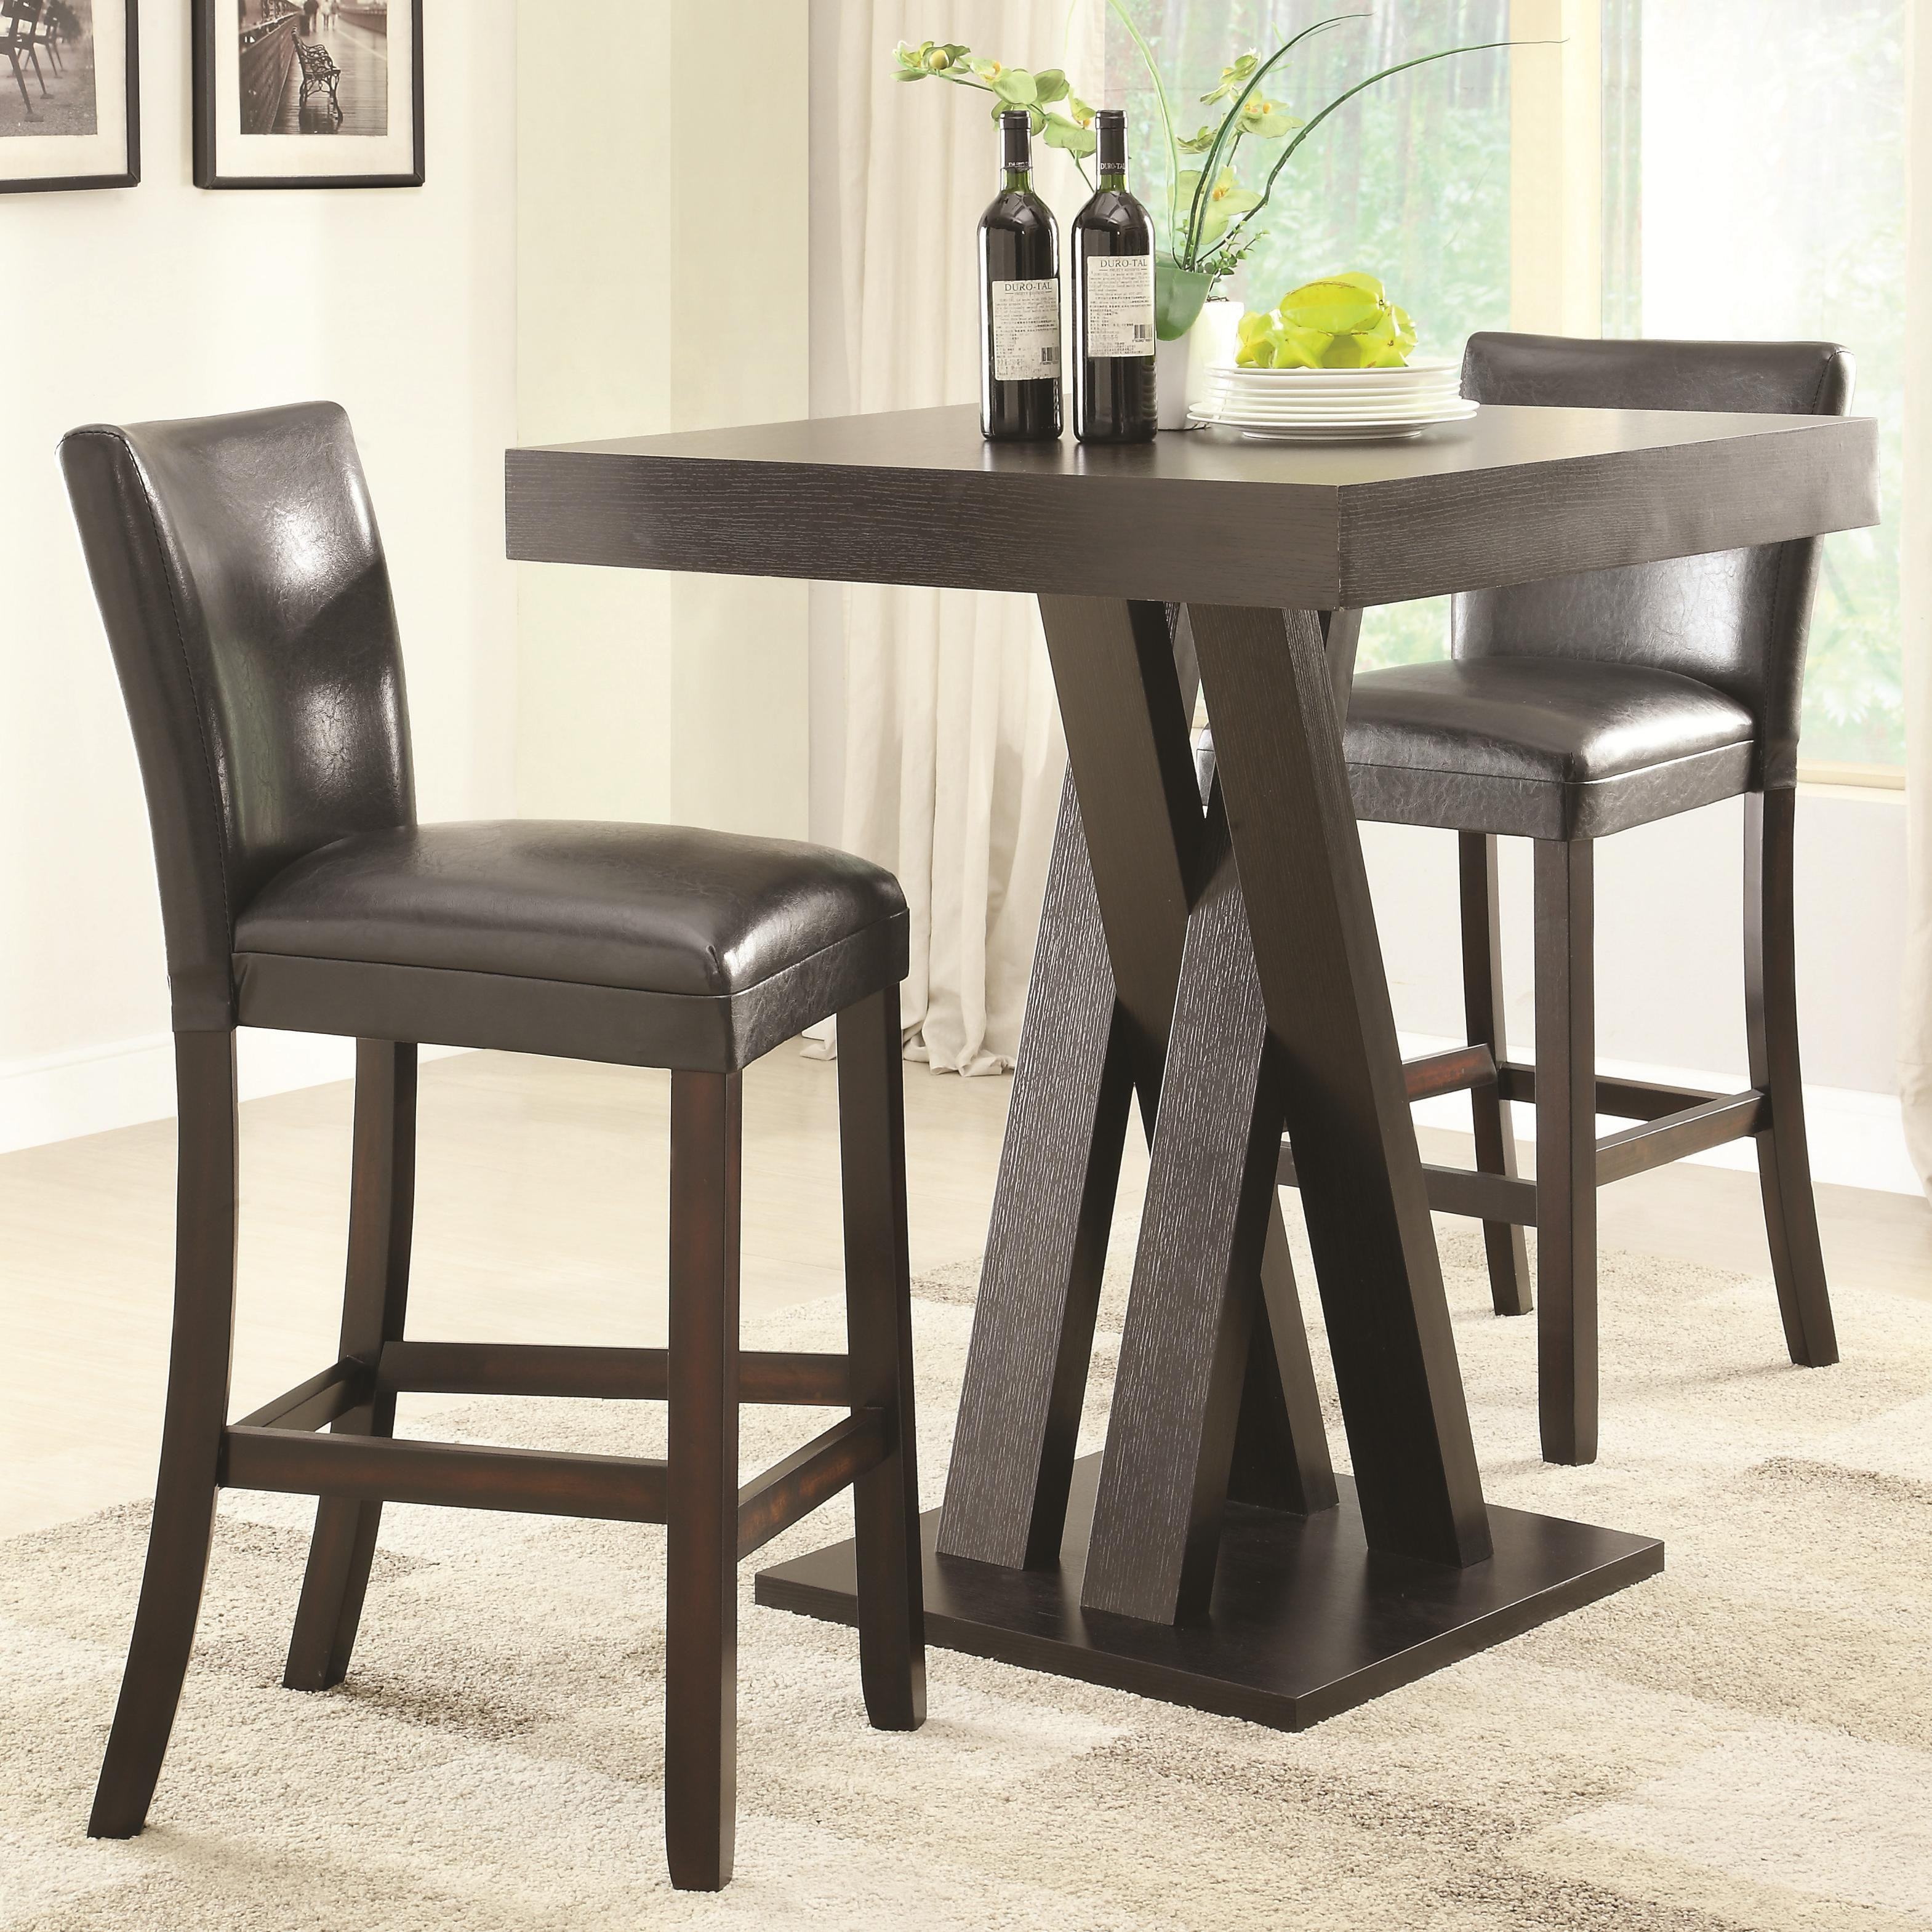 Coaster Bar Units and Bar Tables Three Piece Bar Height Table and Stools  Set | Dunk & Bright Furniture | Pub Table and Stool Sets